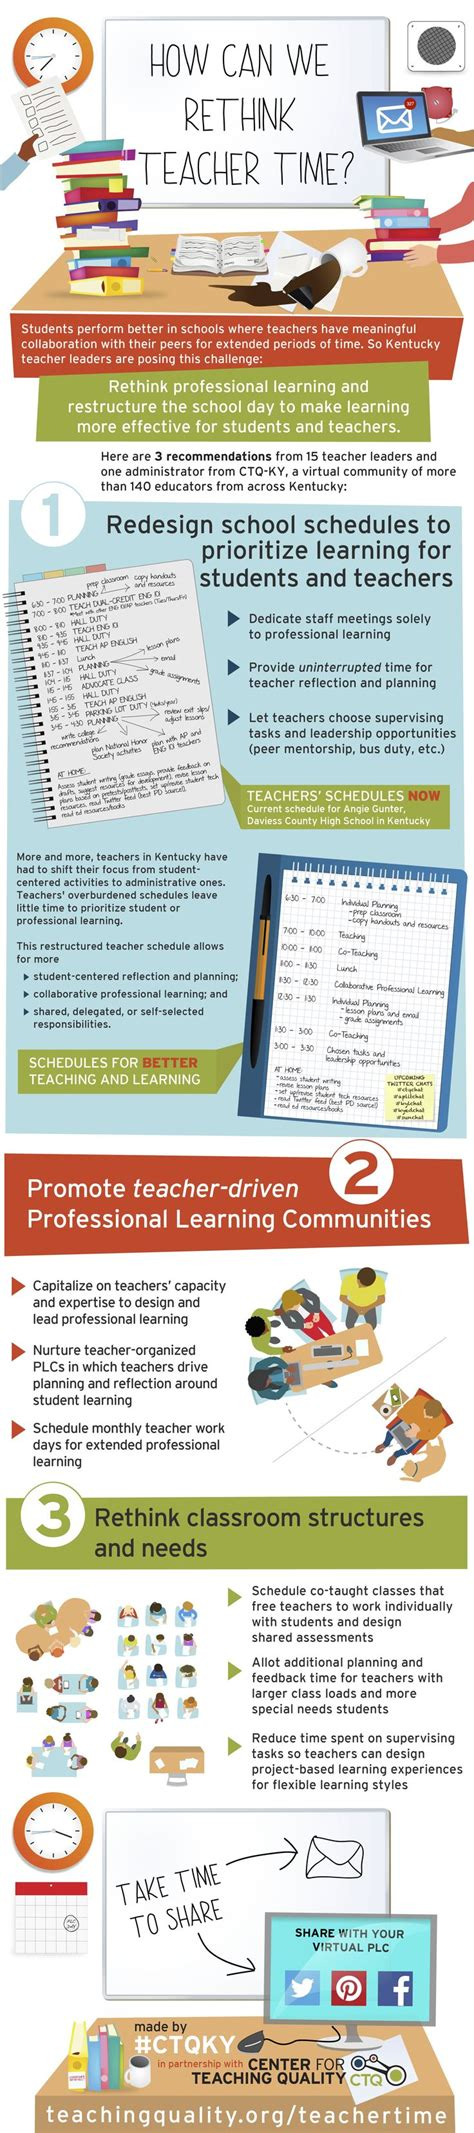 professional learning communities ideas